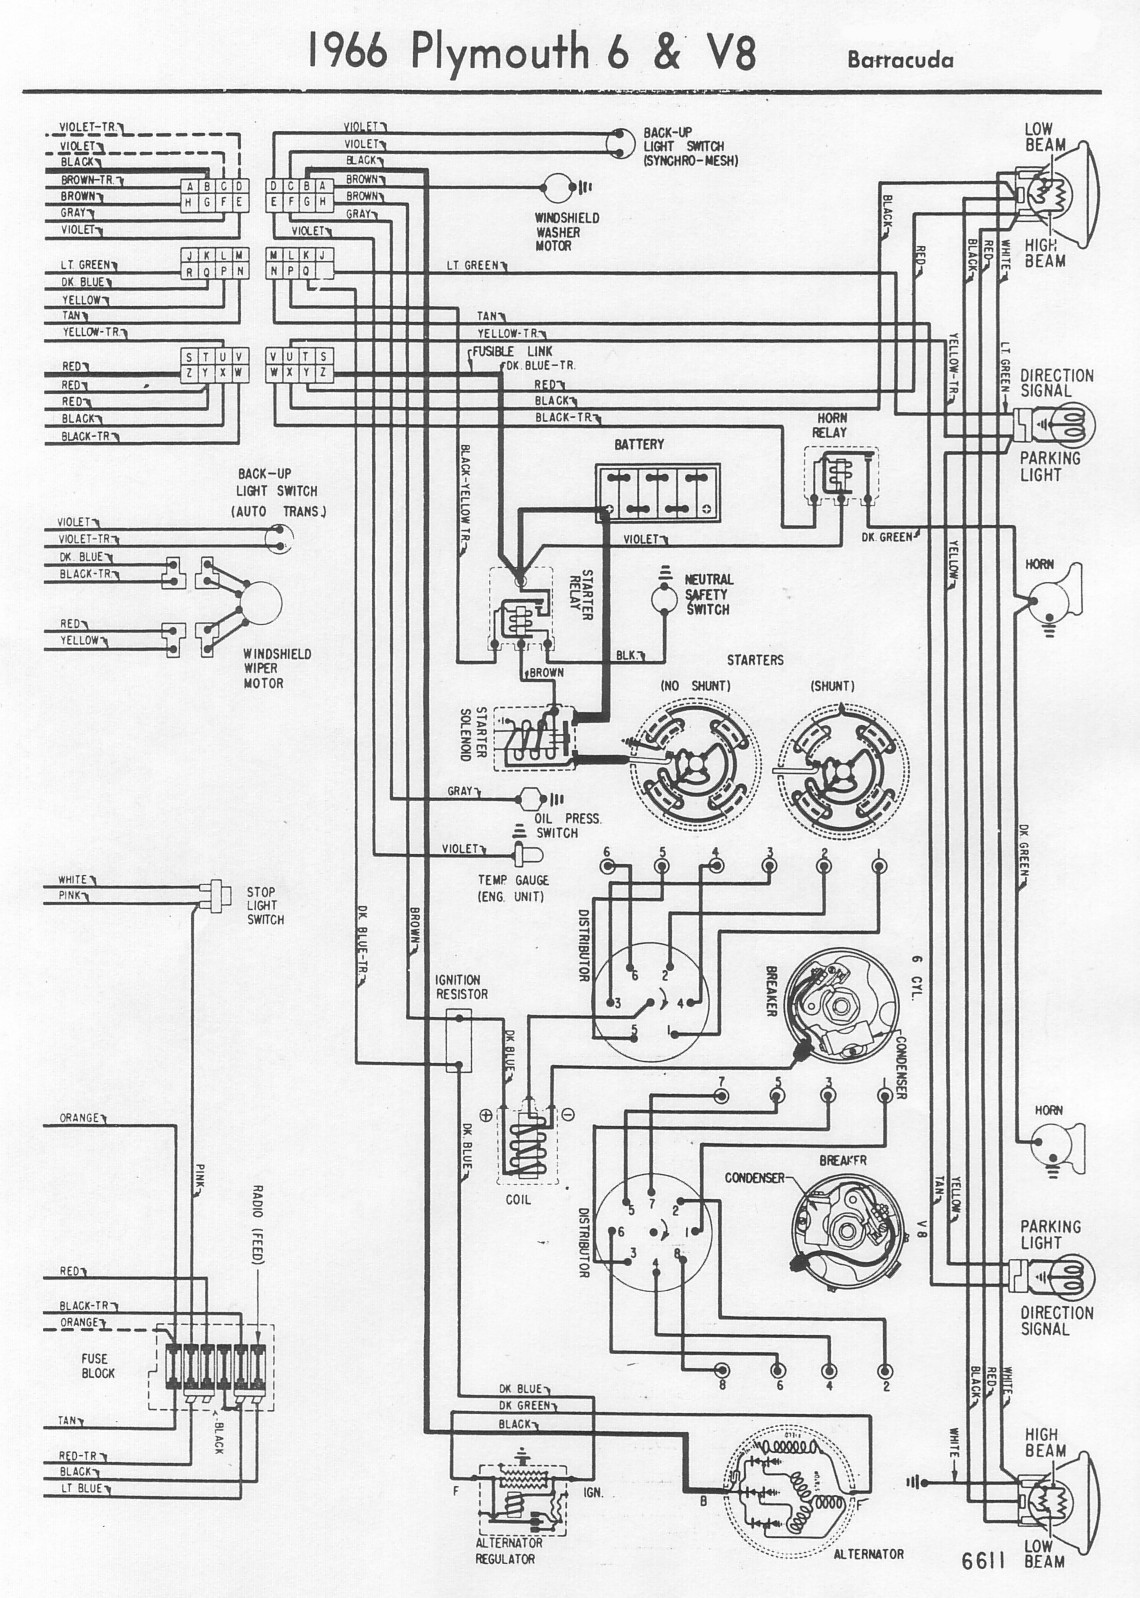 1971 Cuda Wiring Diagram : 24 Wiring Diagram Images